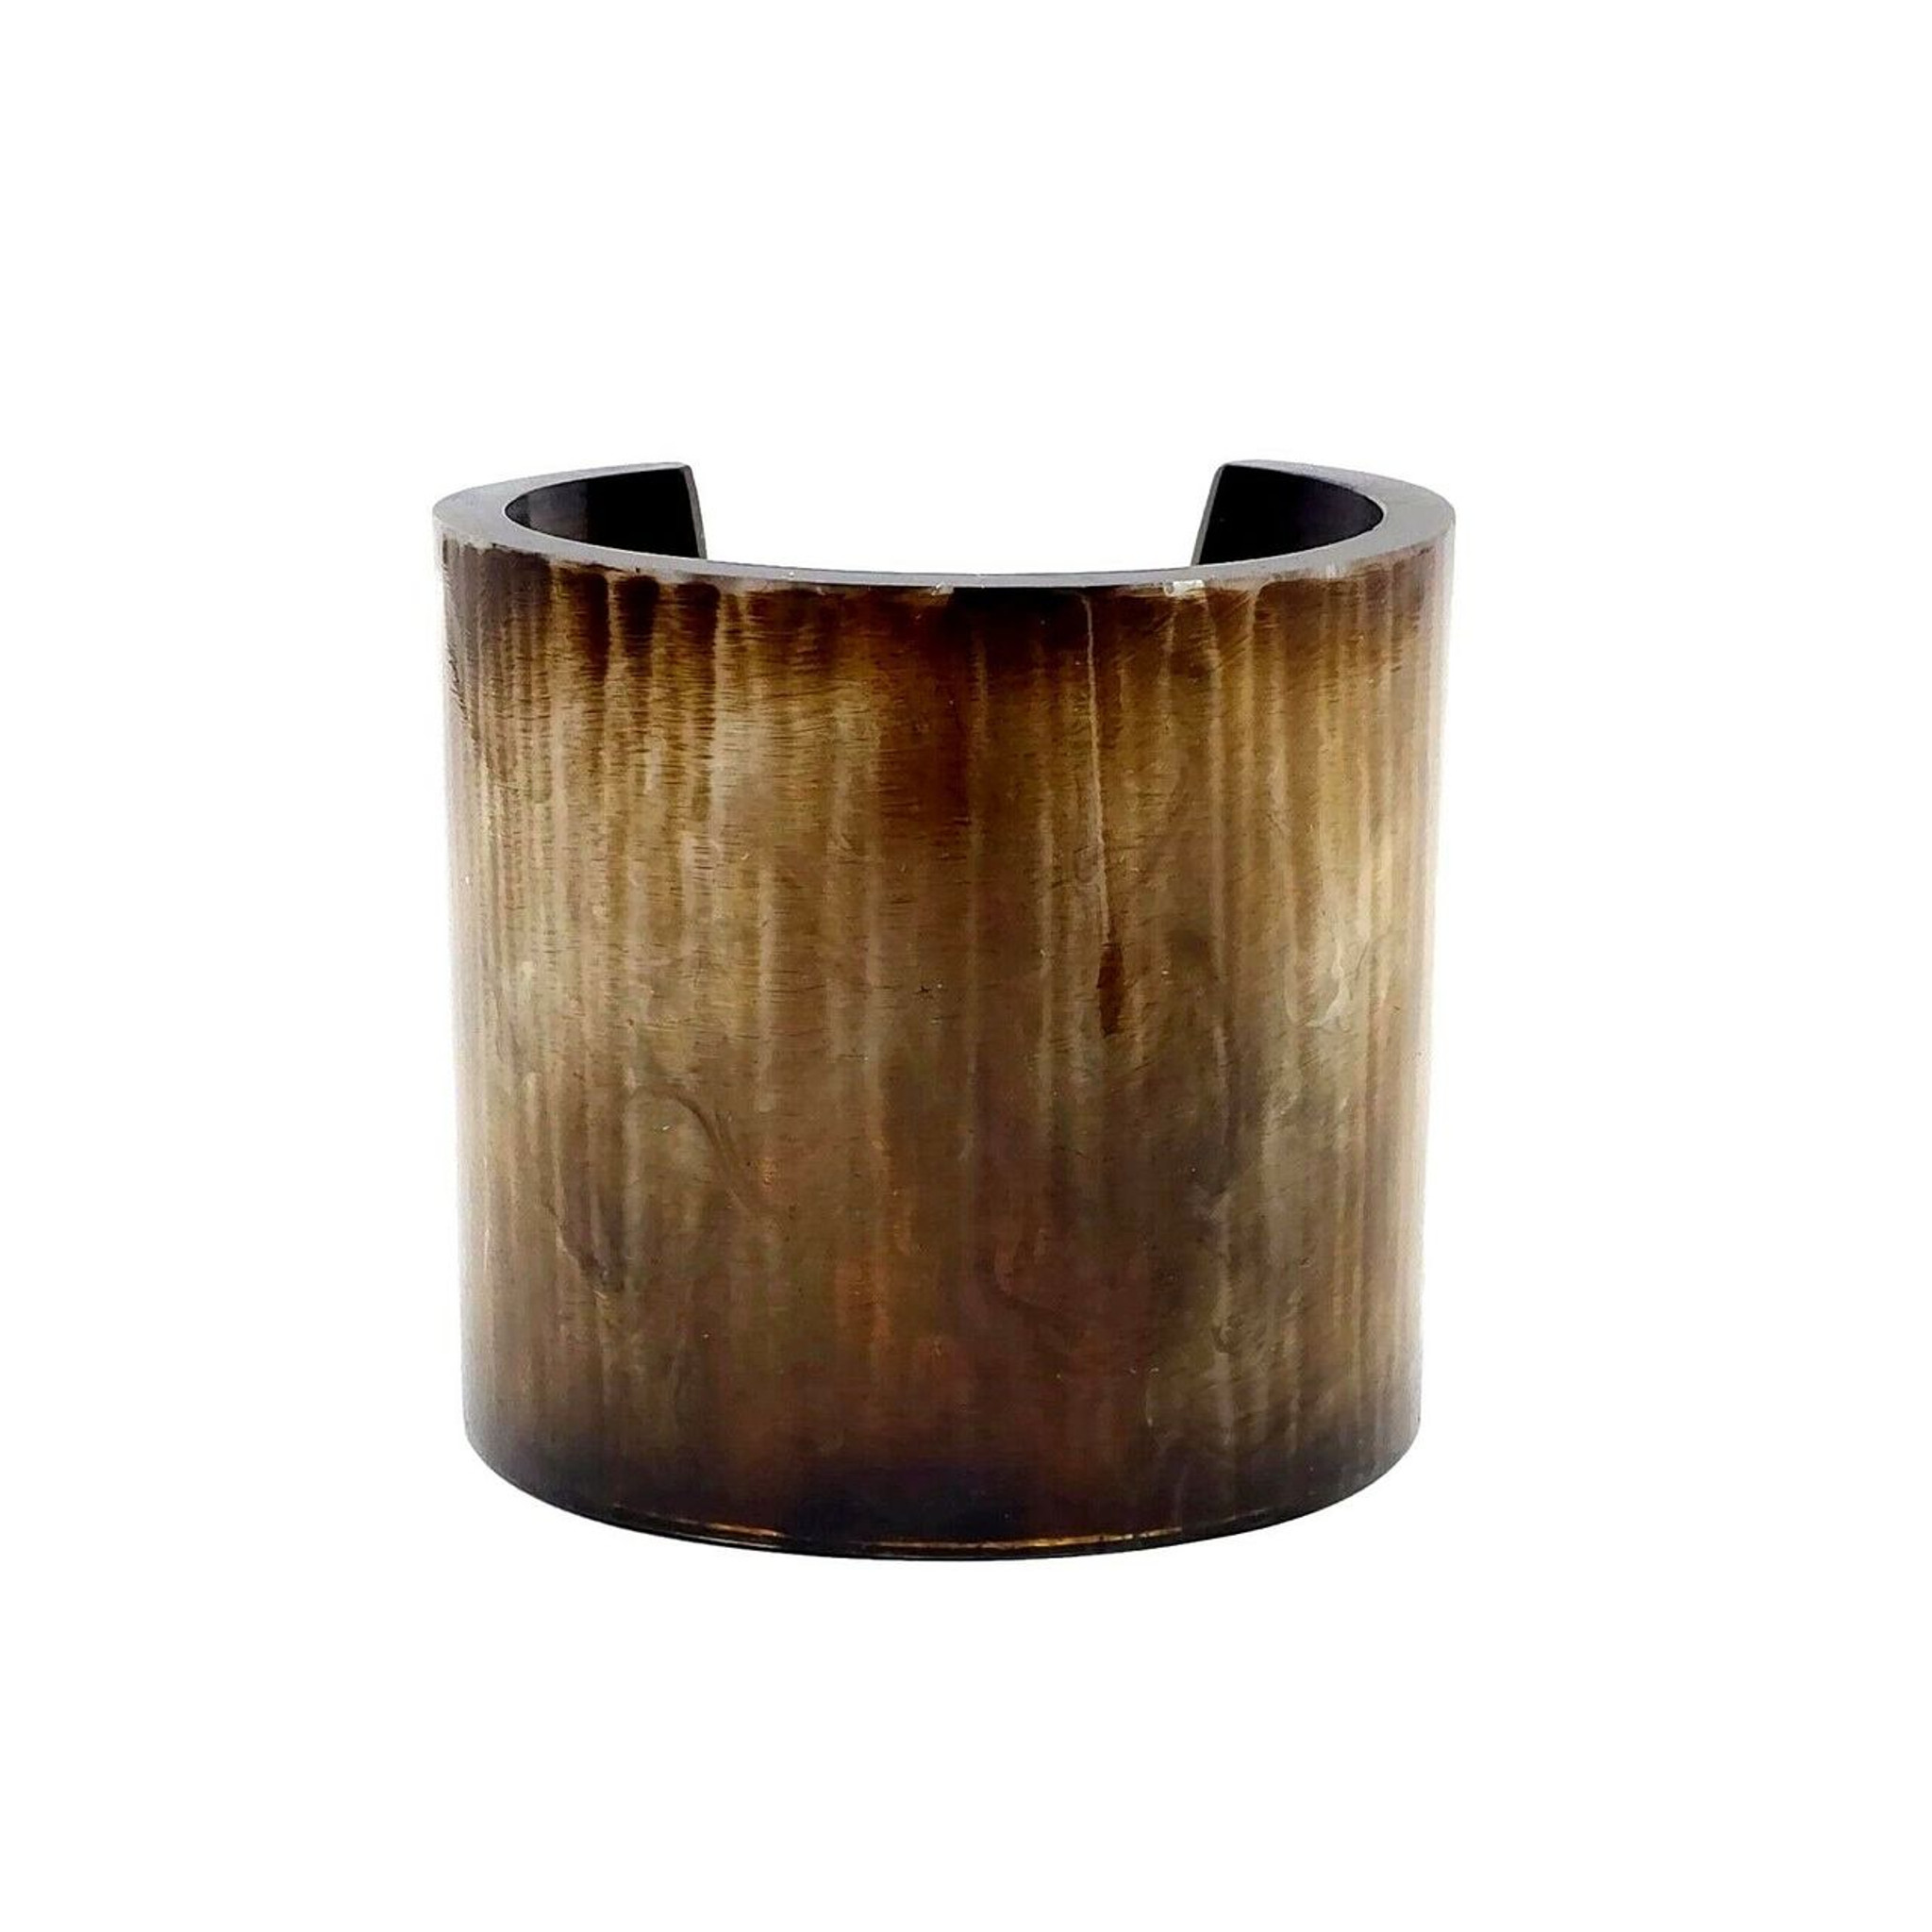 Resin Cuff Bracelet Chunky Fashion Jewelry 2.7""